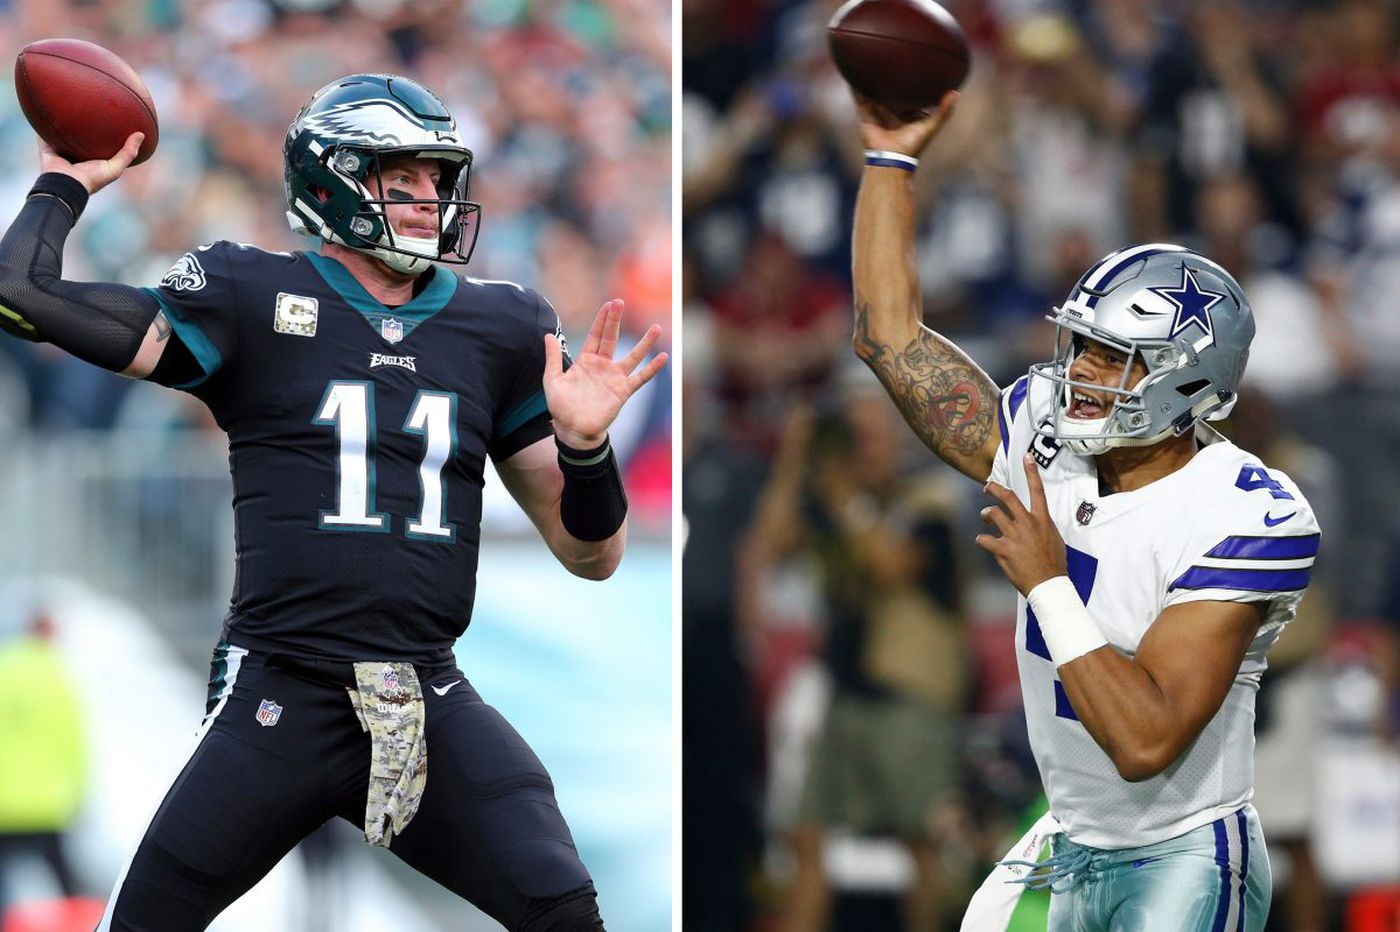 Carson Wentz, Dak Prescott add new element to Eagles-Cowboys rivalry